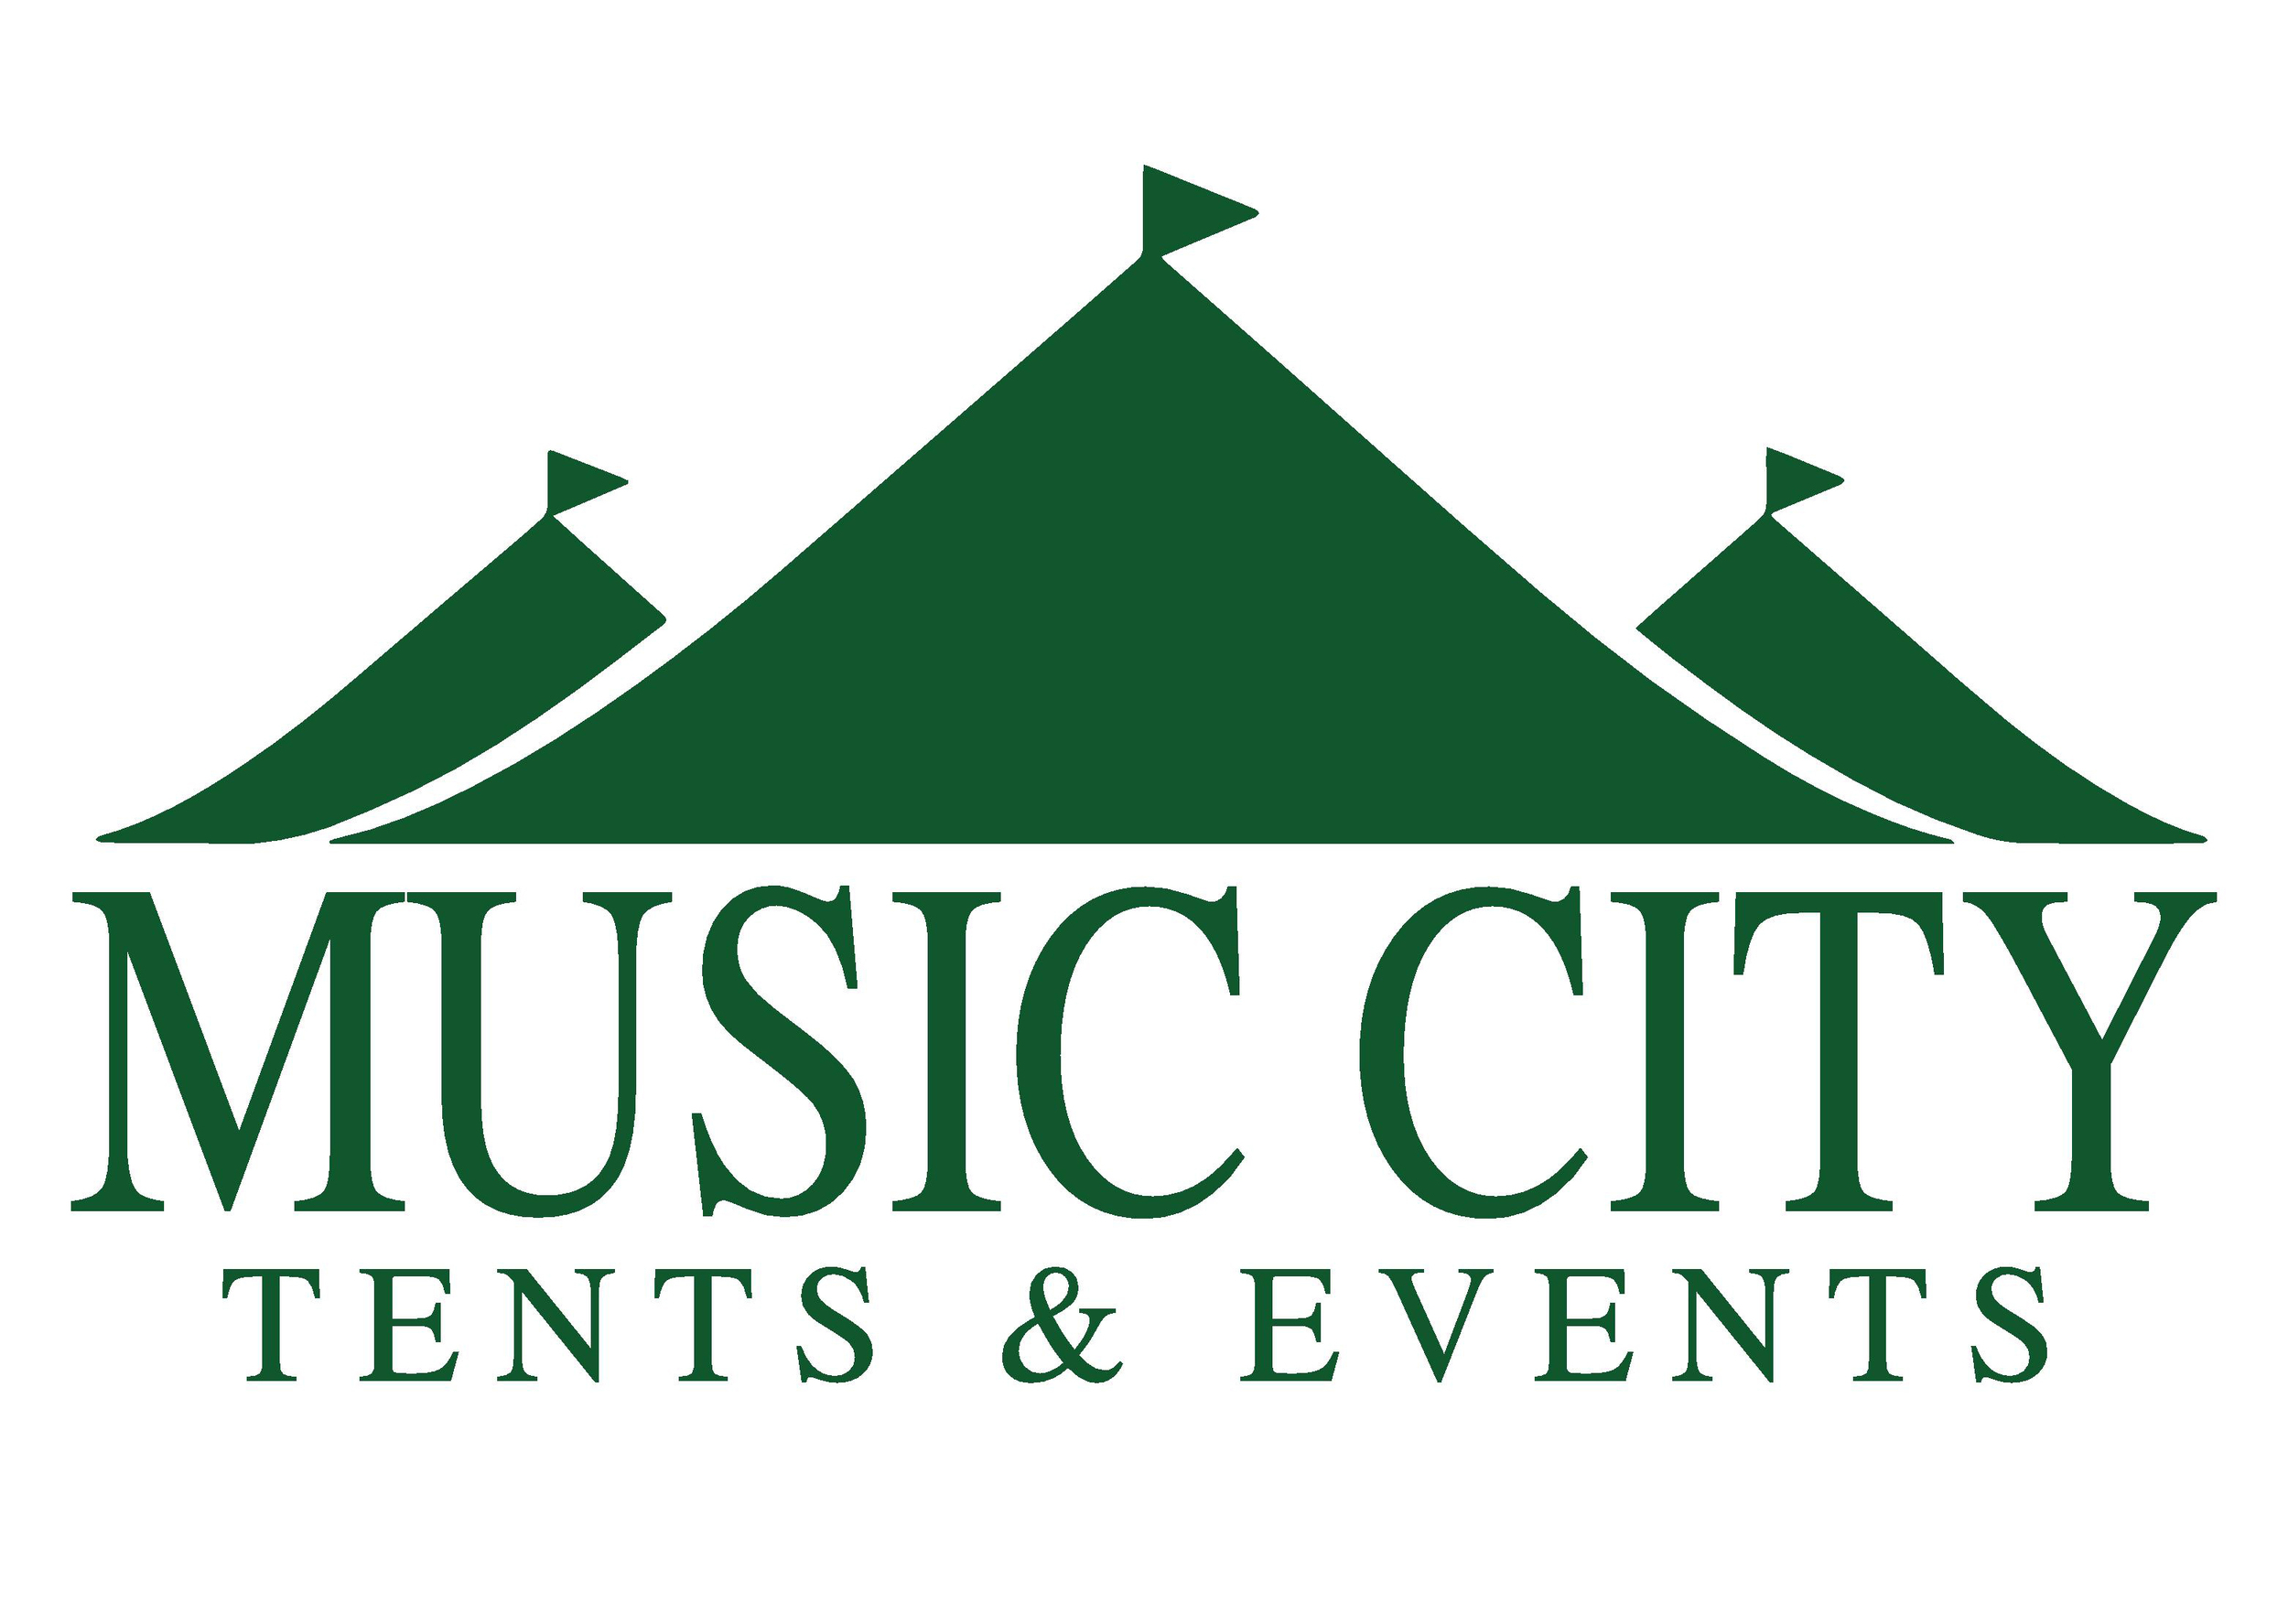 Music City Tents & Events